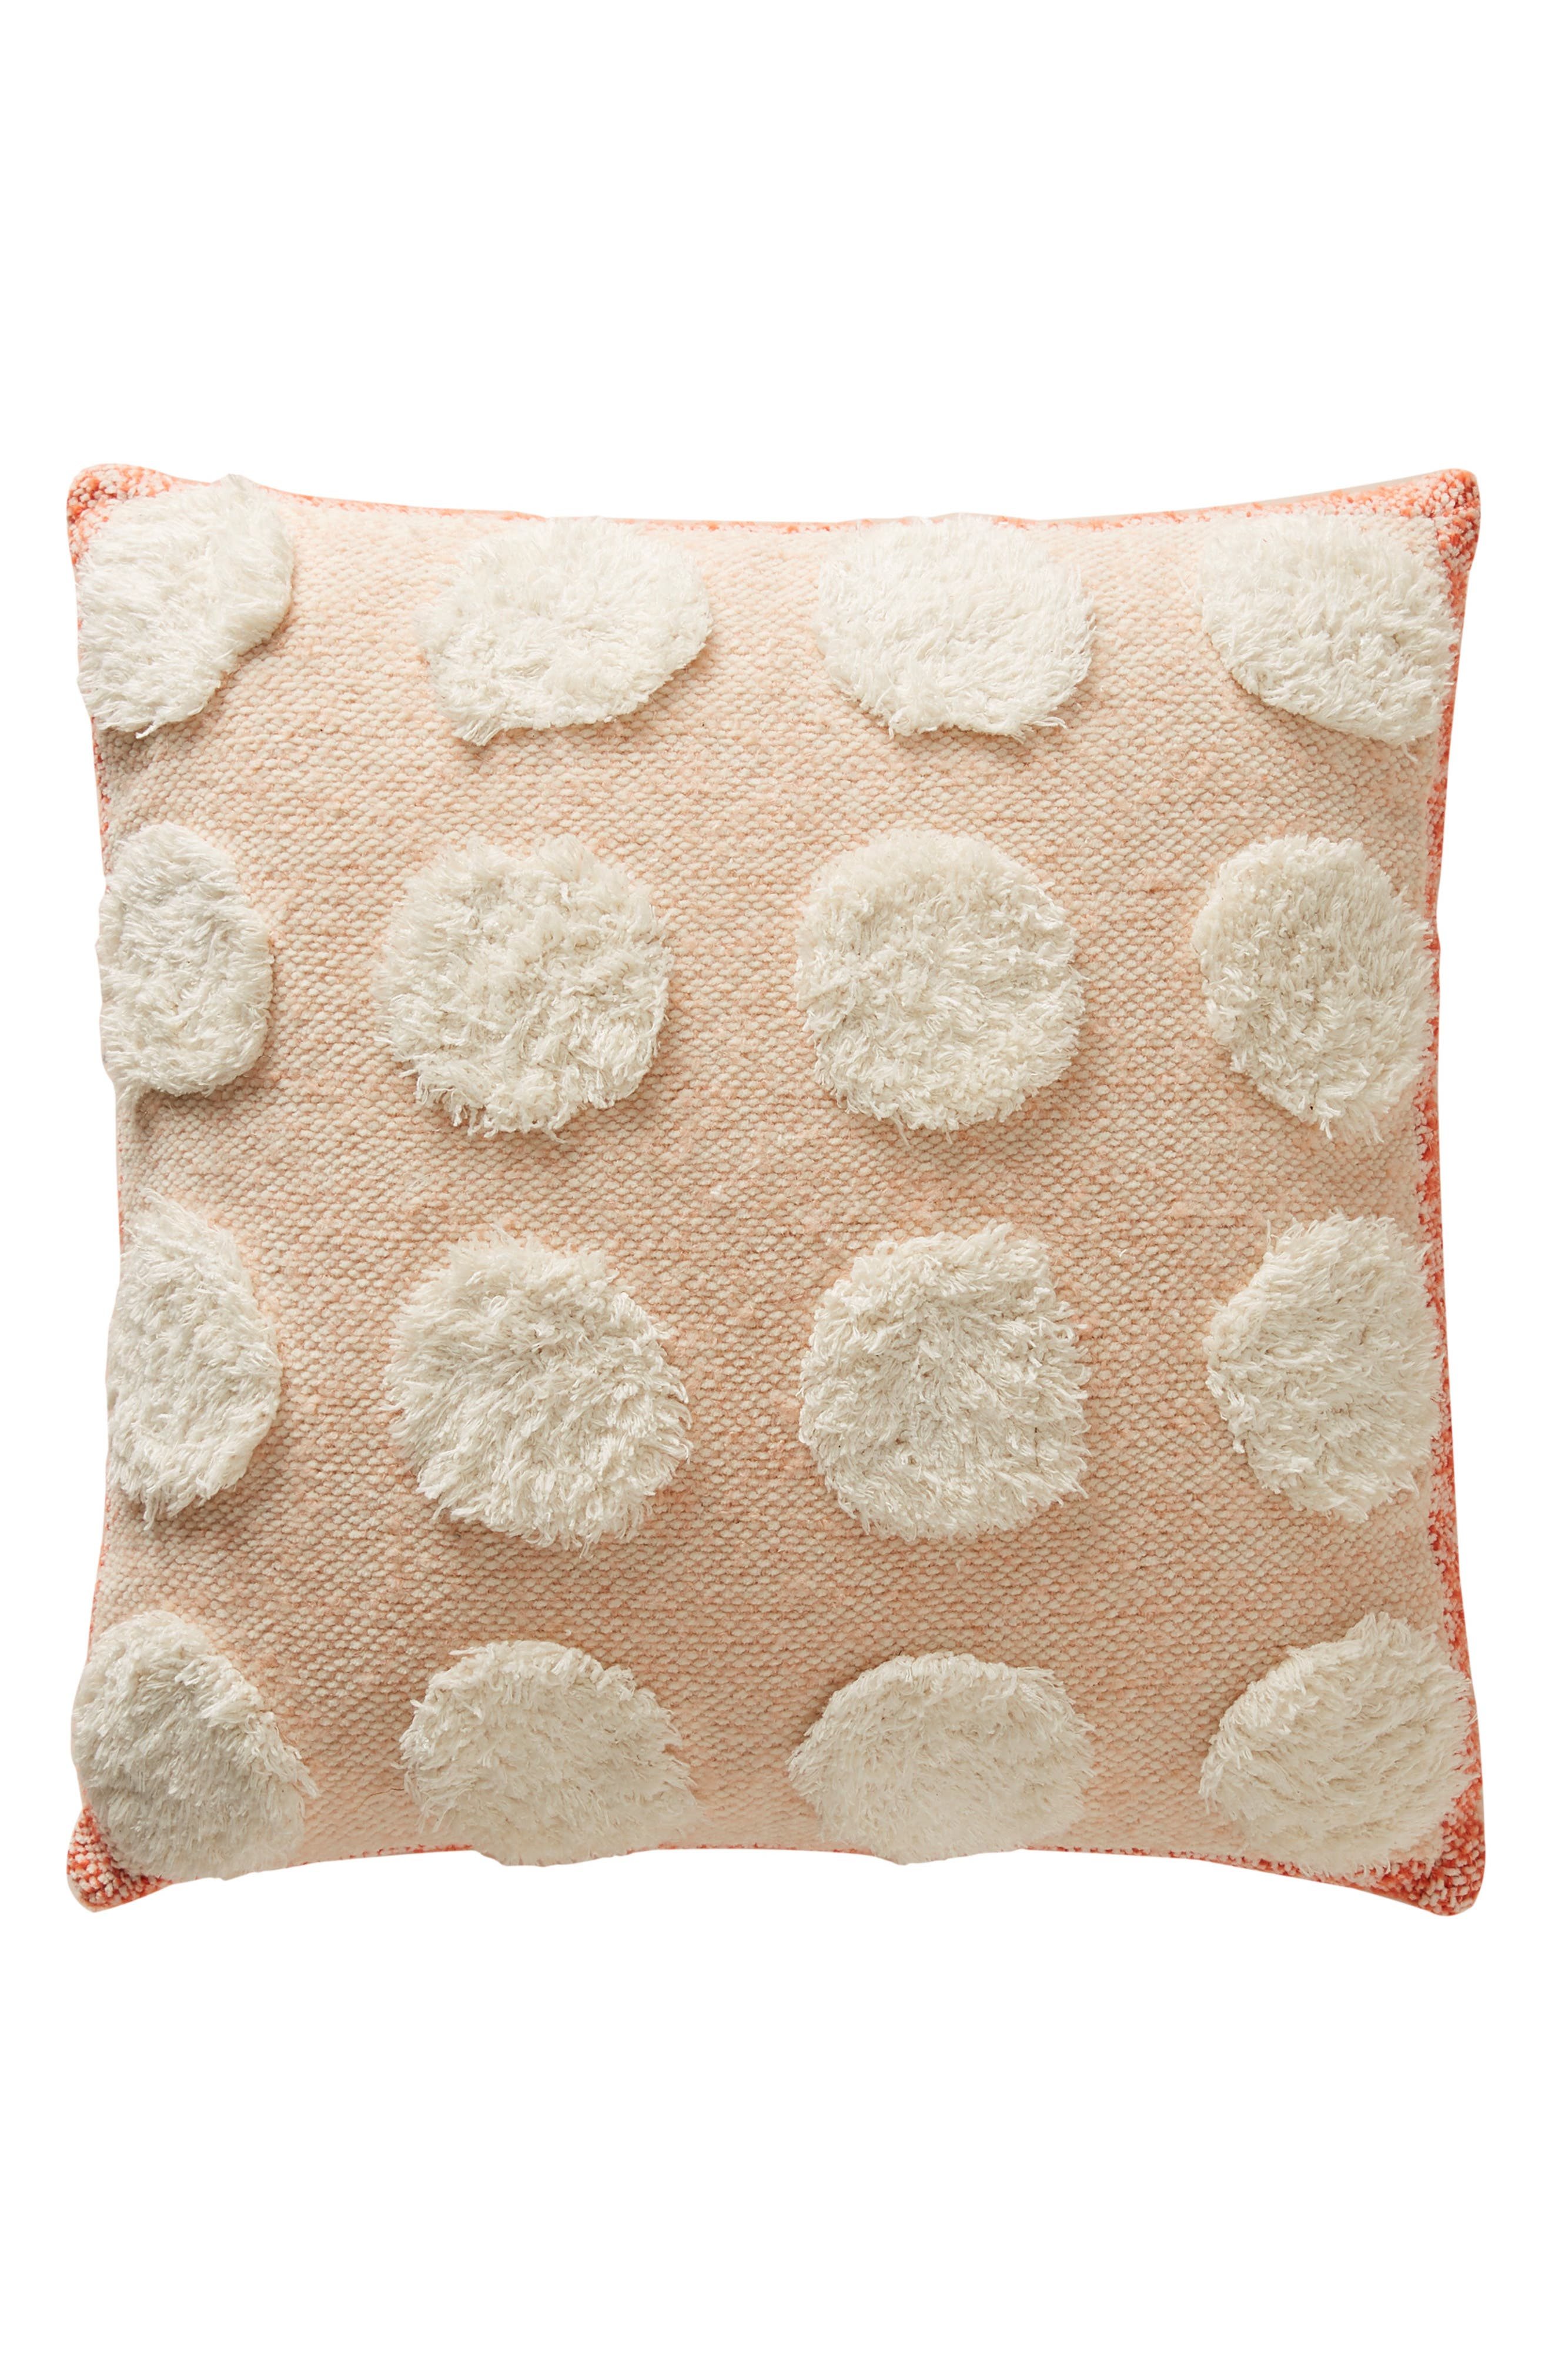 Suvarna Accent Pillow,                             Alternate thumbnail 5, color,                             APRICOT